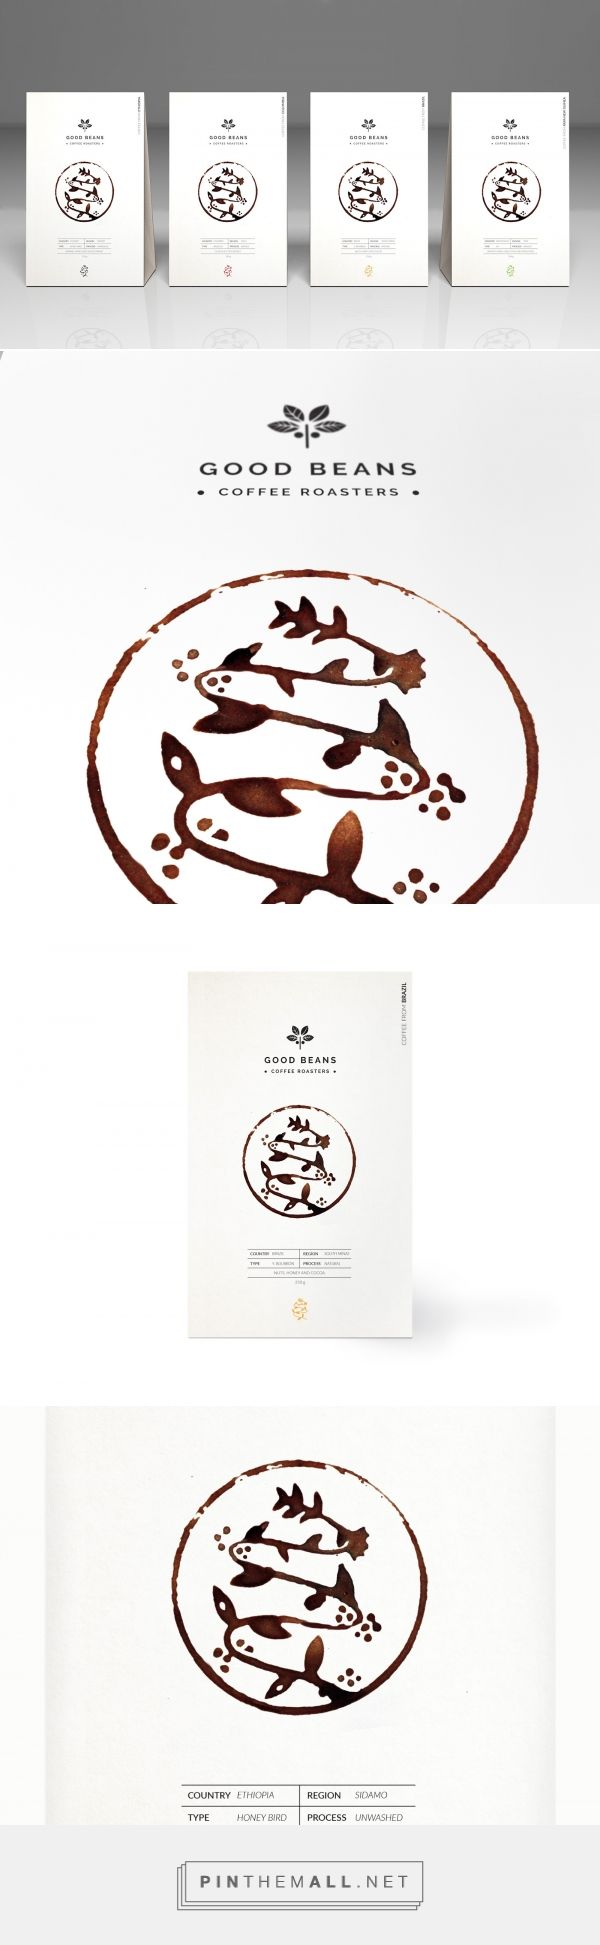 Good Beans - Packaging of the World - Creative Package Design Gallery - http://www.packagingoftheworld.com/2017/02/good-beans.html